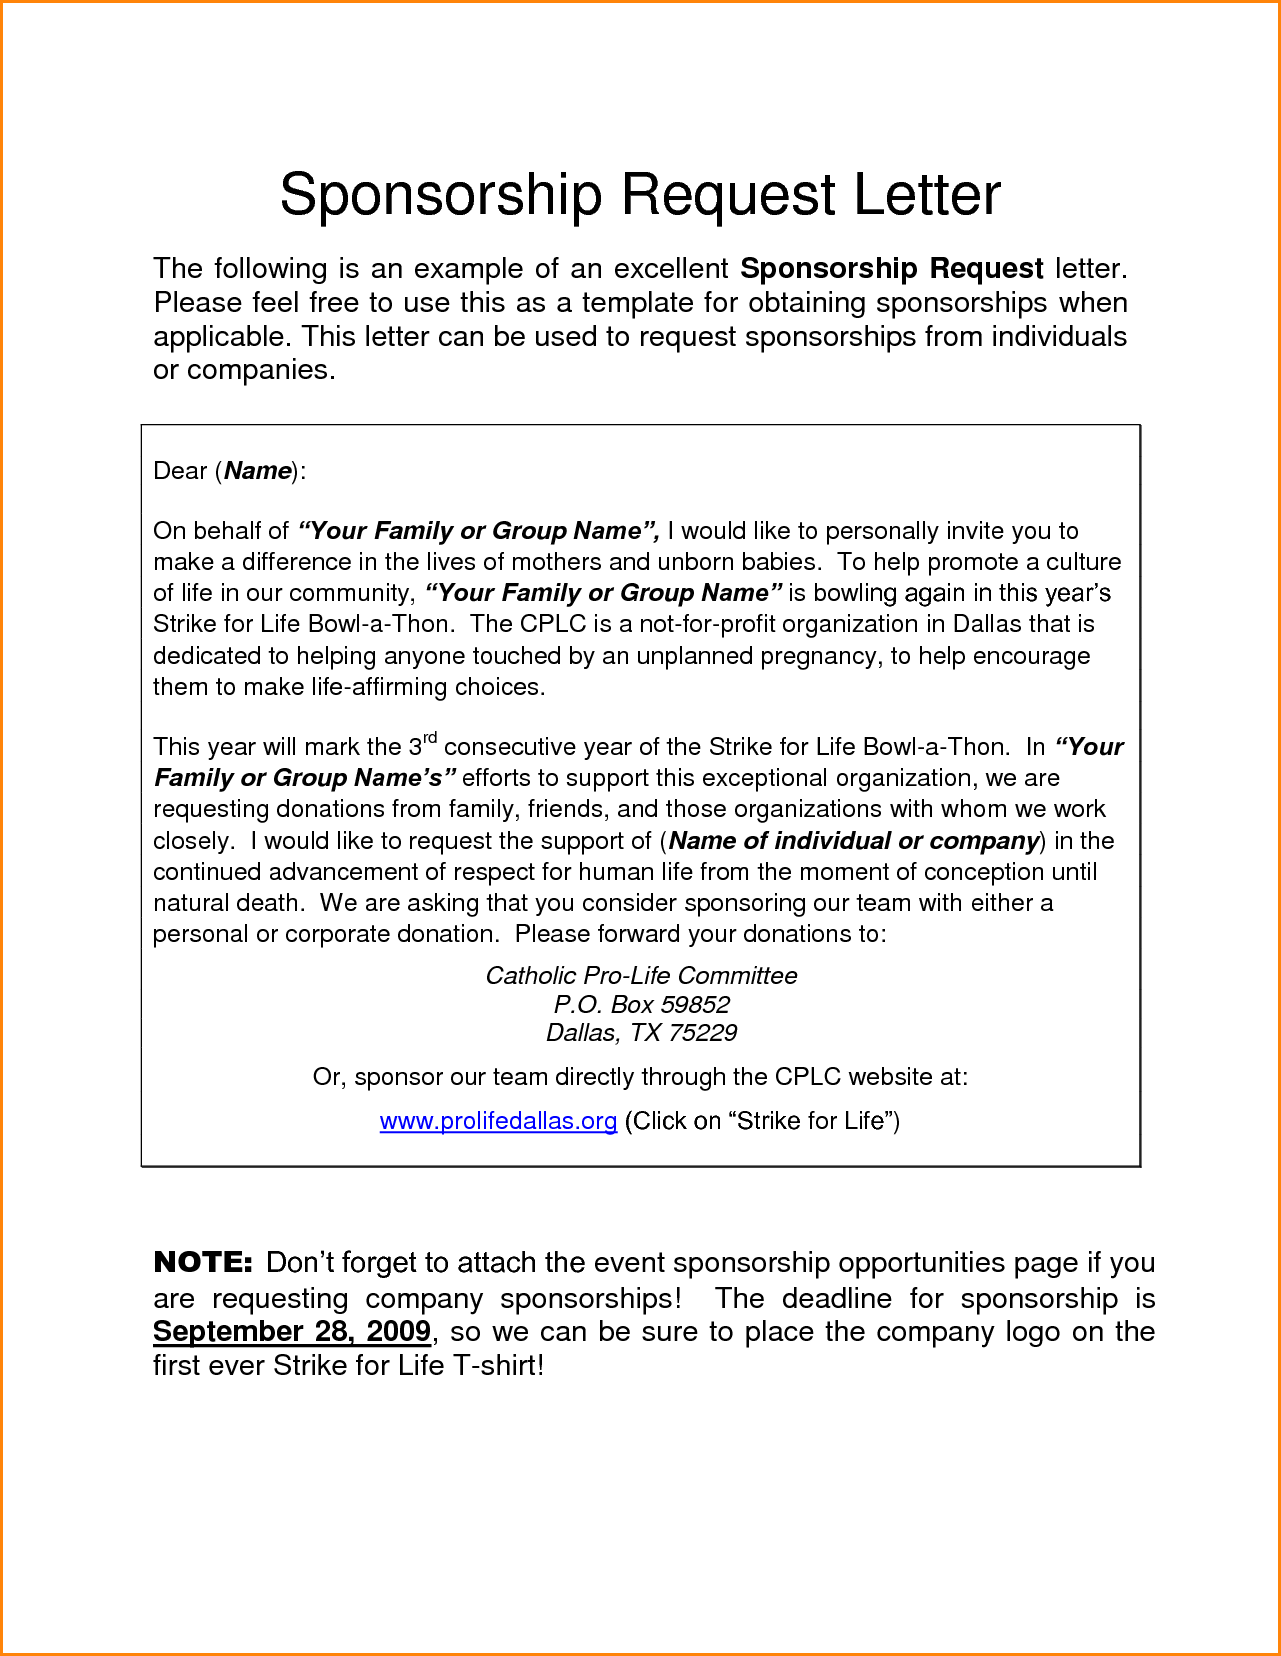 Sponsorship letter sample mple request letters requesting sponsorship letter sample mple request letters requesting scholarship donations cover altavistaventures